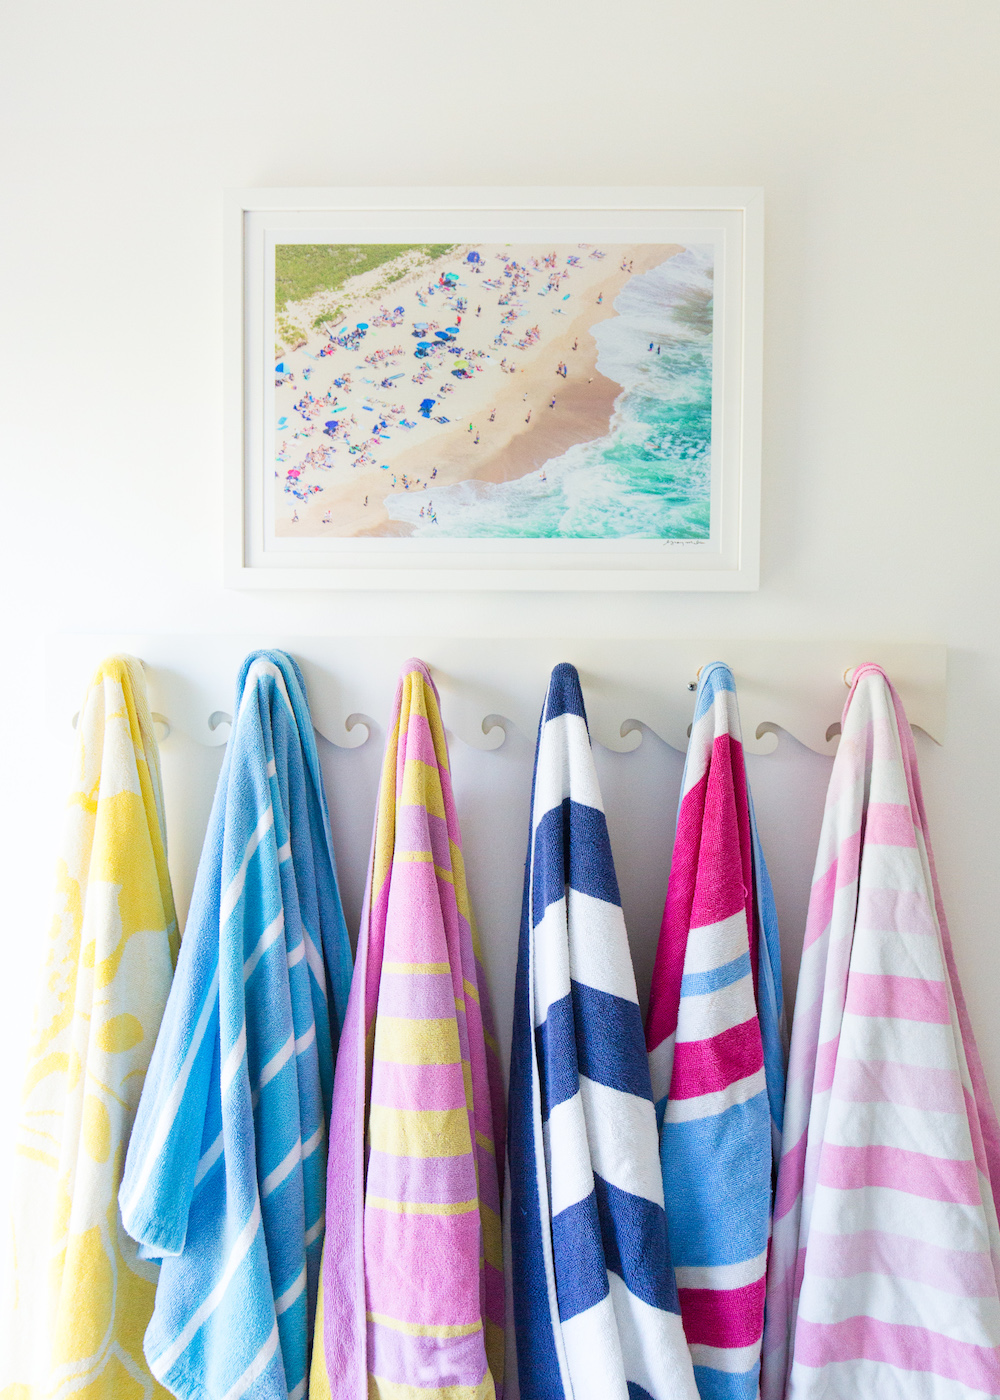 gray malin nantucket ladies beach I on design darling